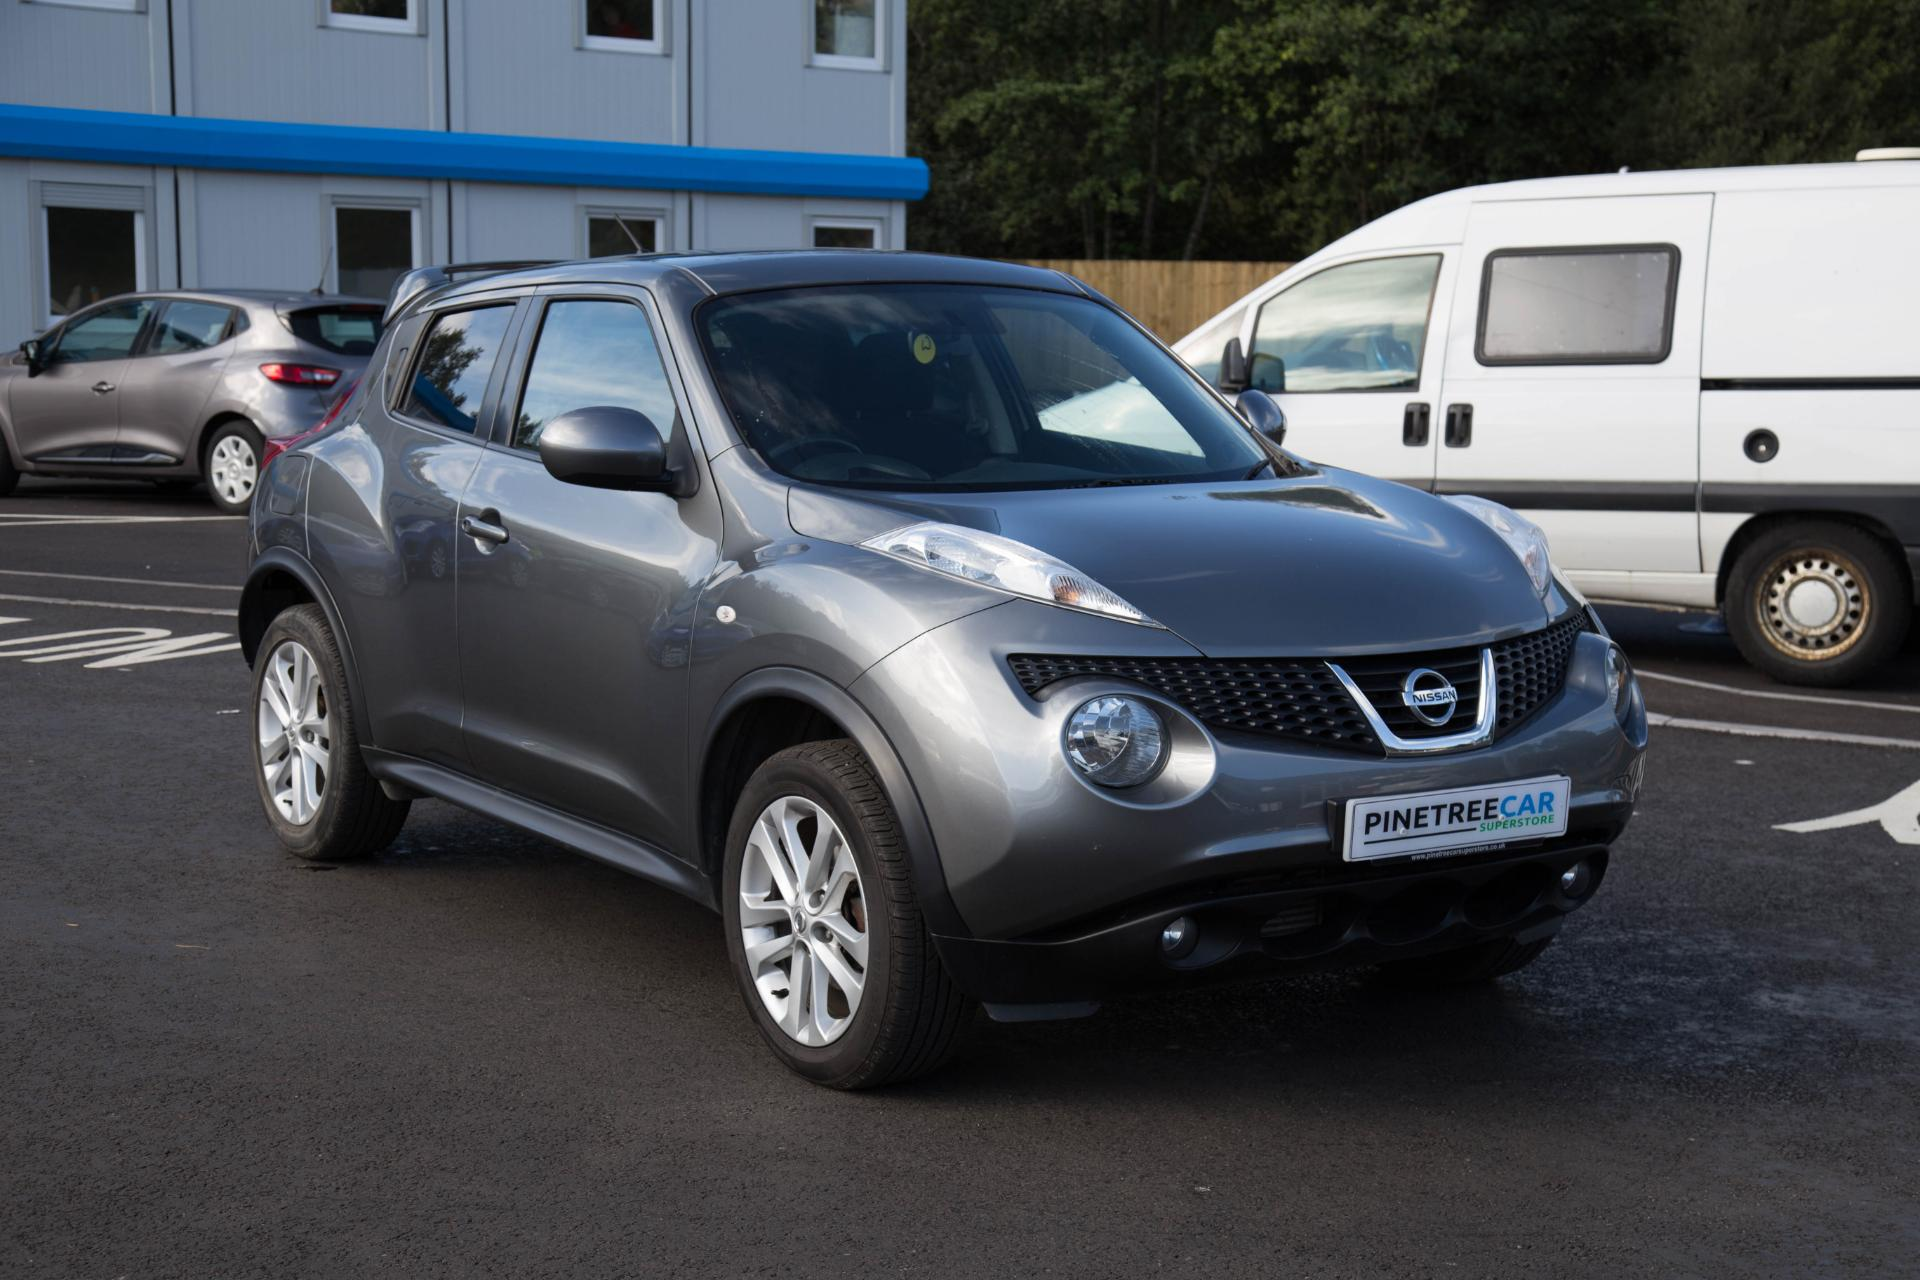 Amazing Nissan Juke Front Tracking Source · Used Nissan Juke 1 5 DCi Acenta 5dr  Premium Pack 5 Doors Hatchback